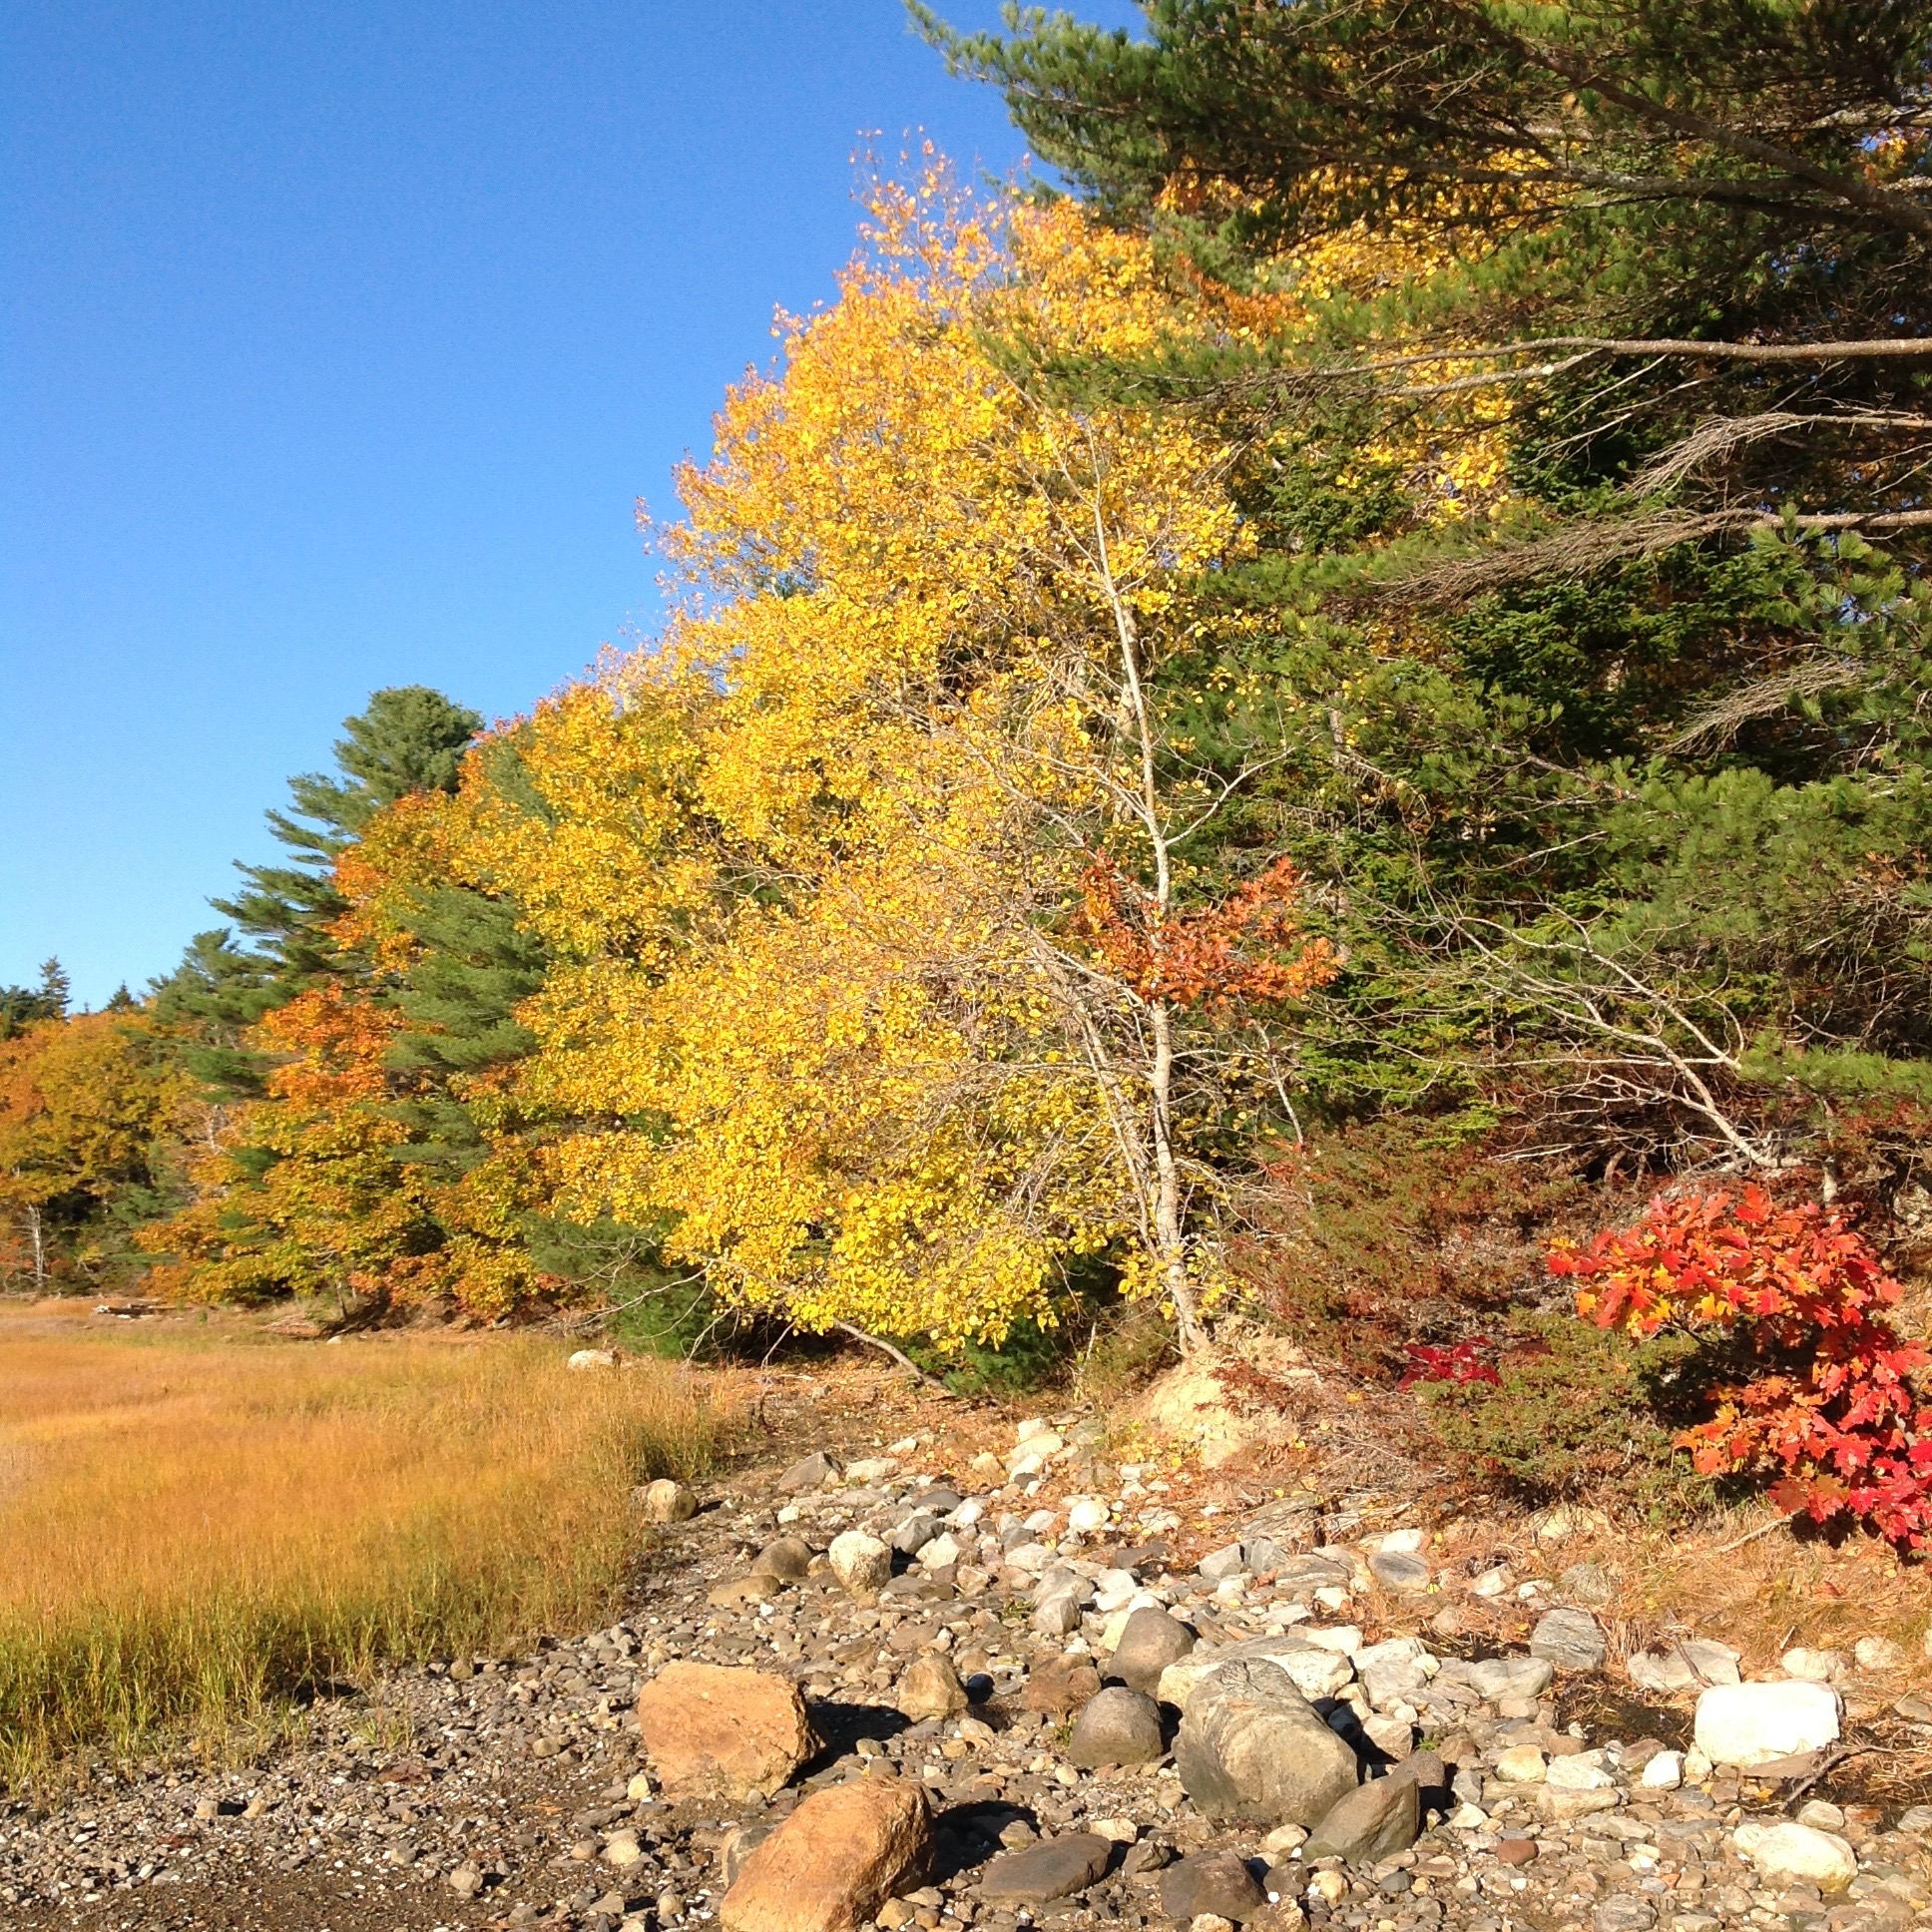 And, of course, fall's painting.